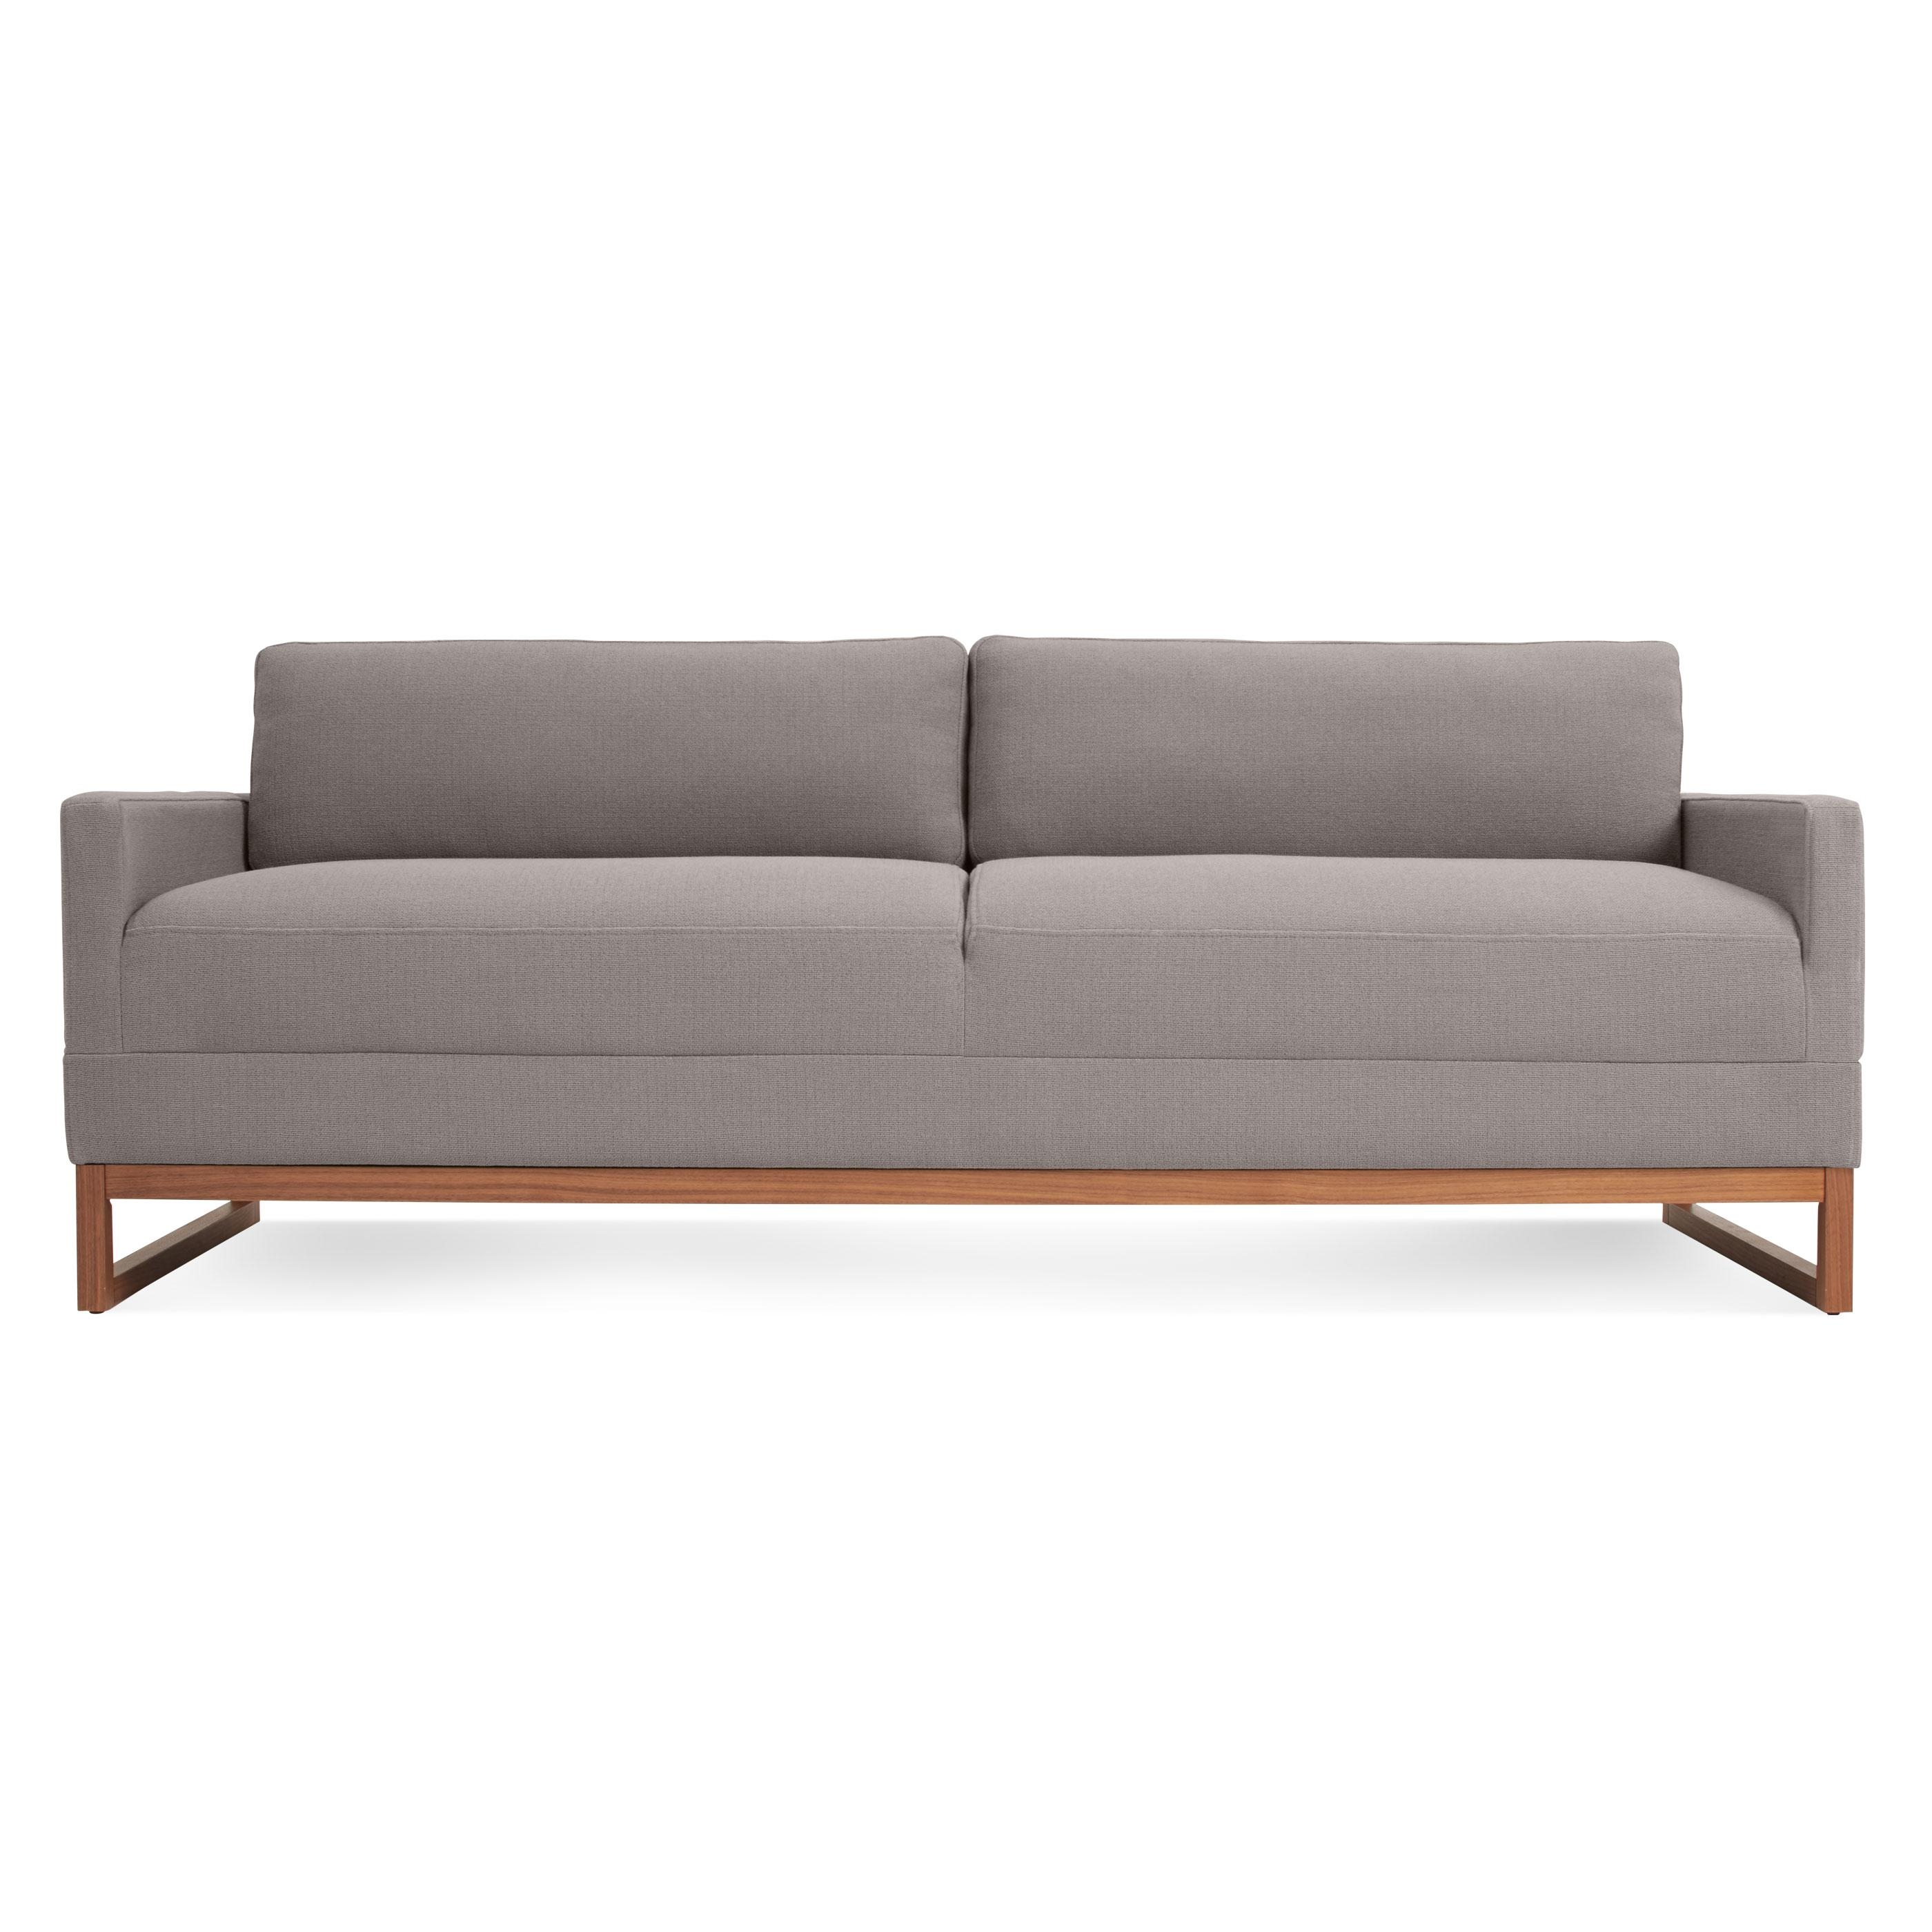 Sofas Center : Aspen Queen Sleeper Sofa Upholstered Trundle With Queen Convertible Sofas (Image 15 of 20)